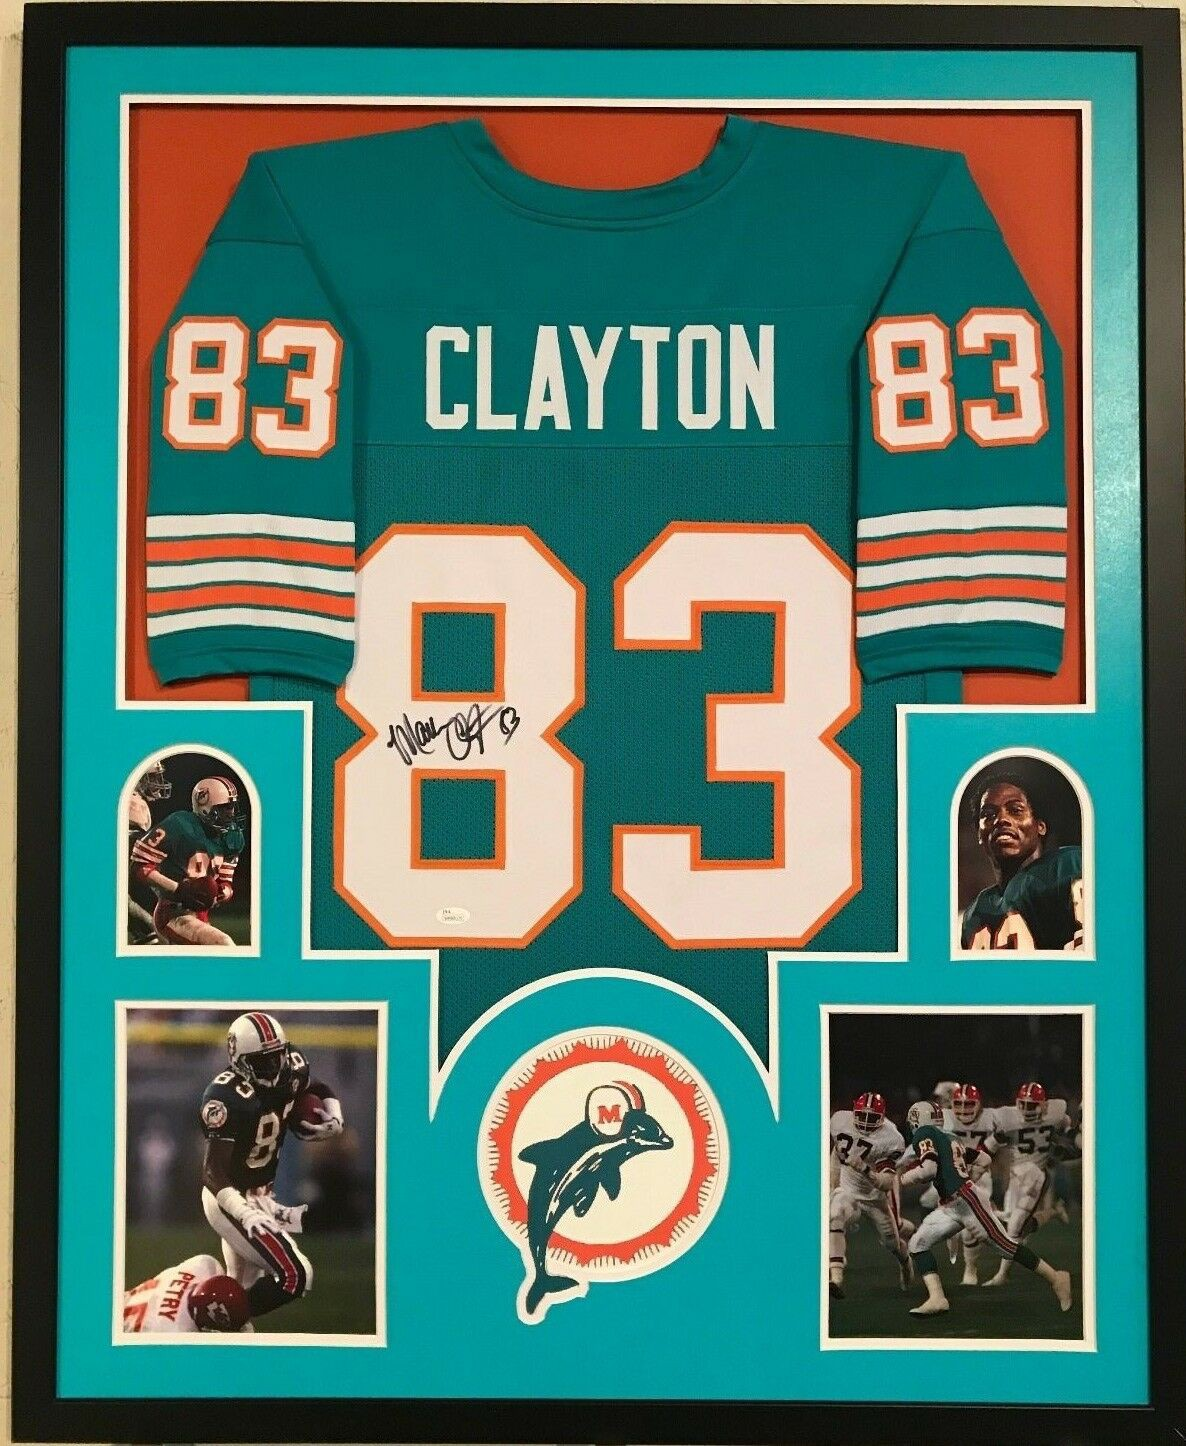 separation shoes c7bf3 78cb1 Framed Mark Clayton Autographed Signed Miami Dolphins Jersey ...